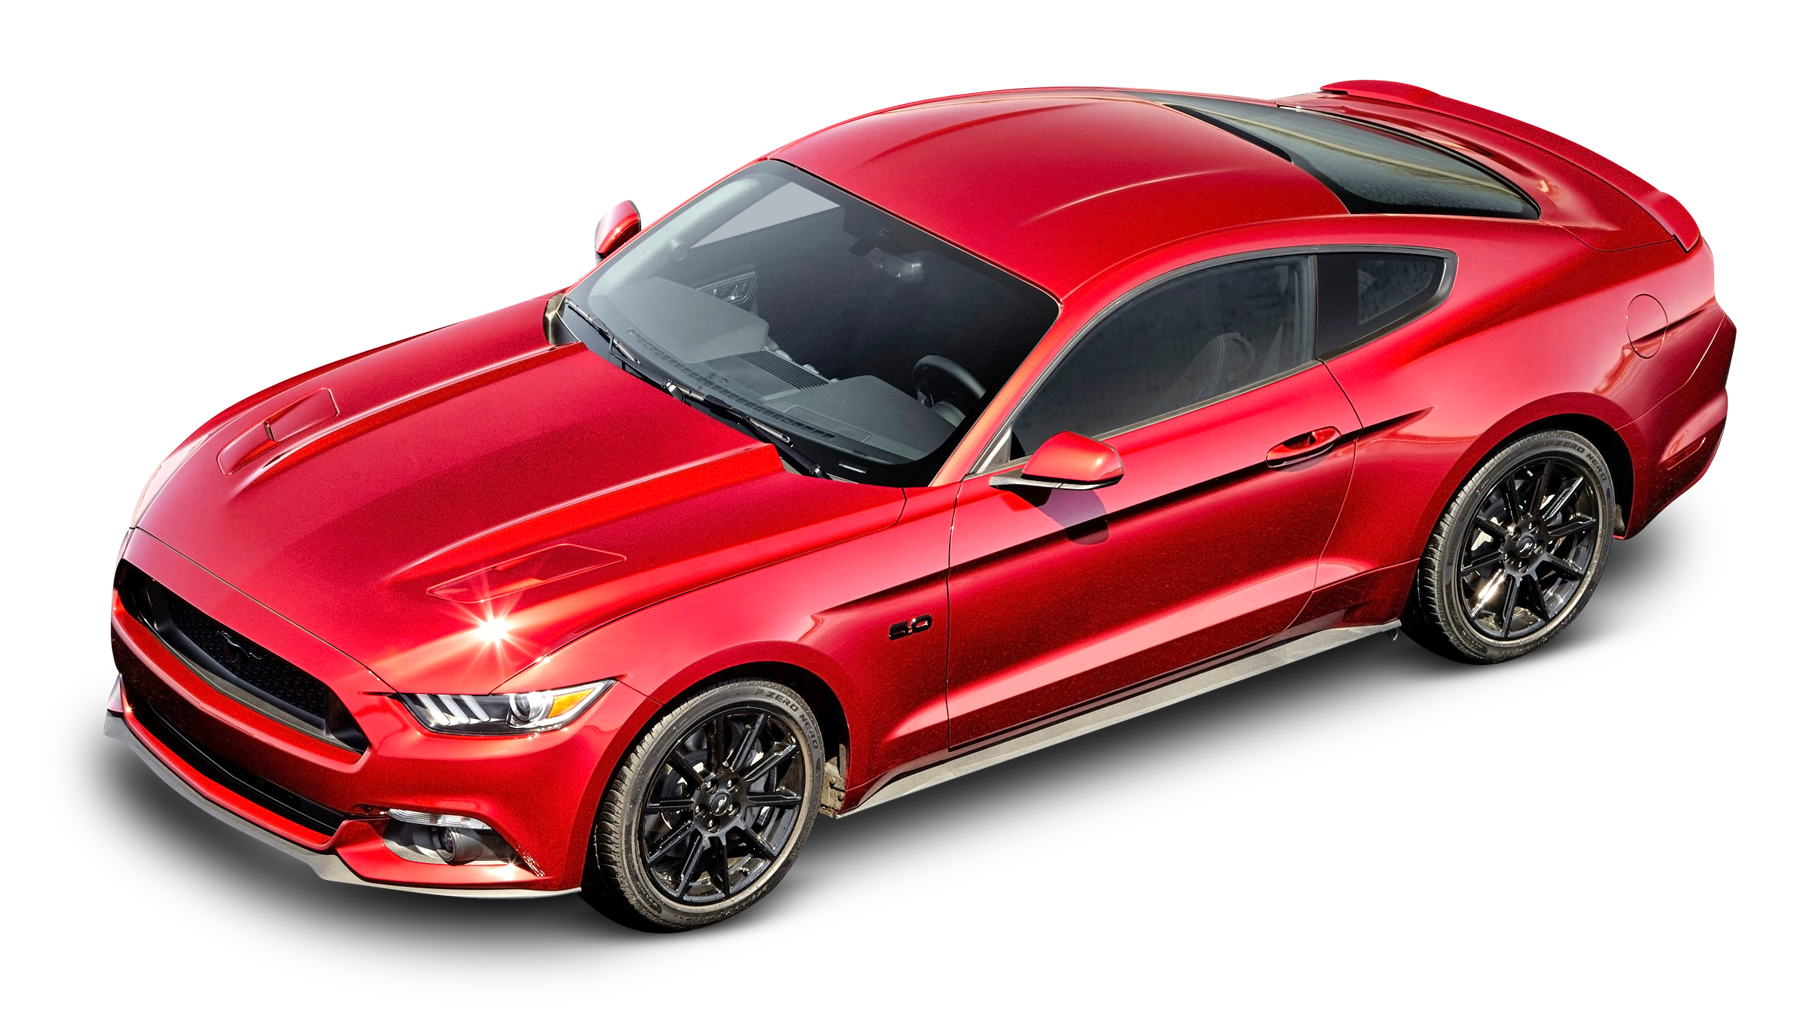 Red Ford Mustang Gt Car Mustang Gt Car Gt Cars